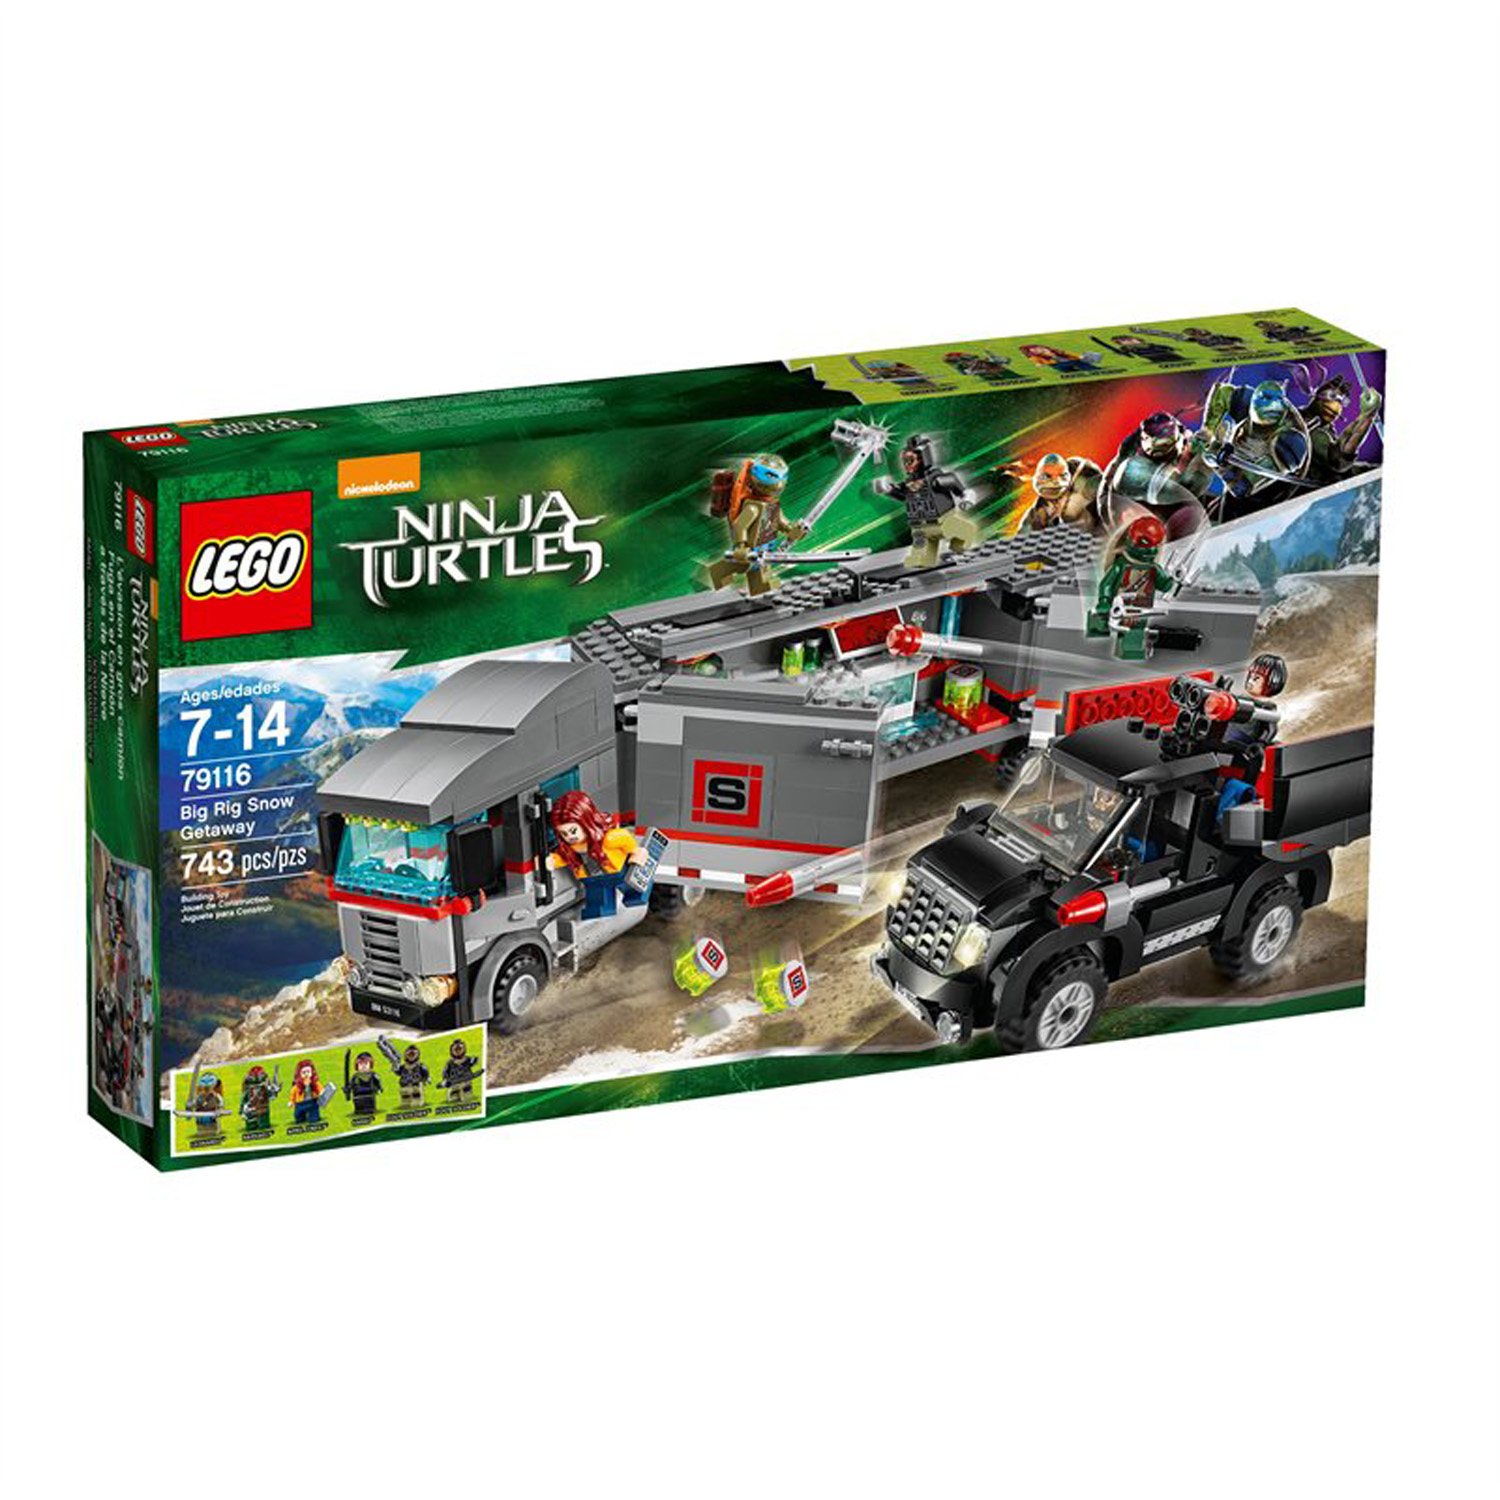 LEGO x Teenage Mutant Ninja Turtles Movie Set 2